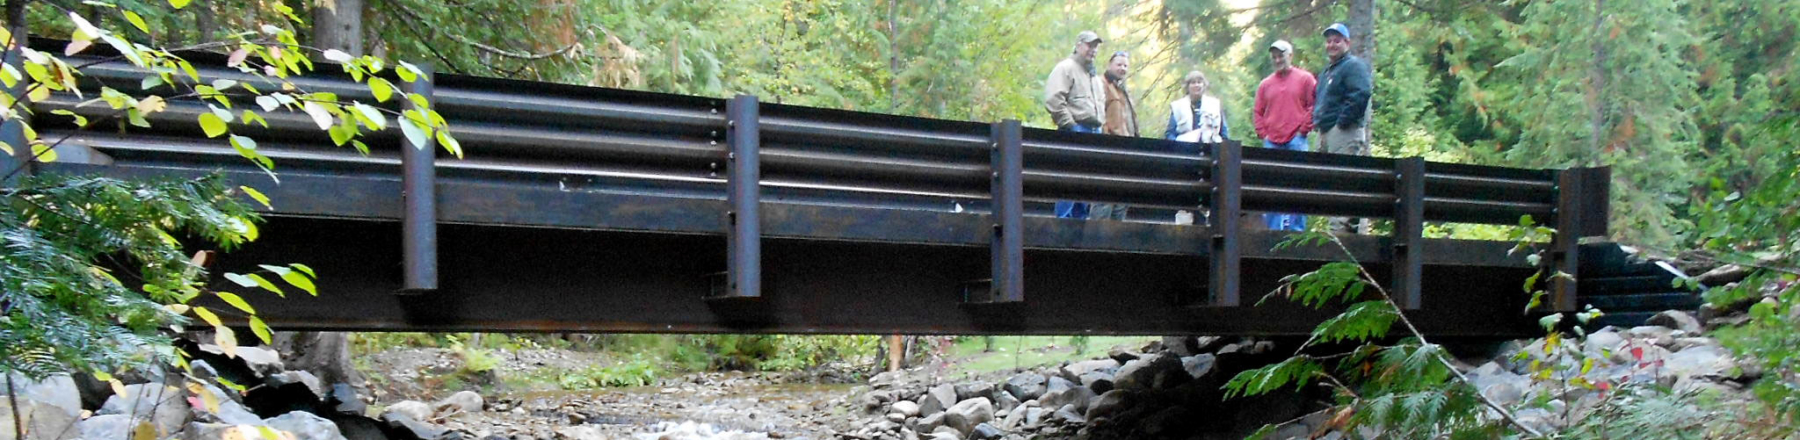 Fish Passage Barriers